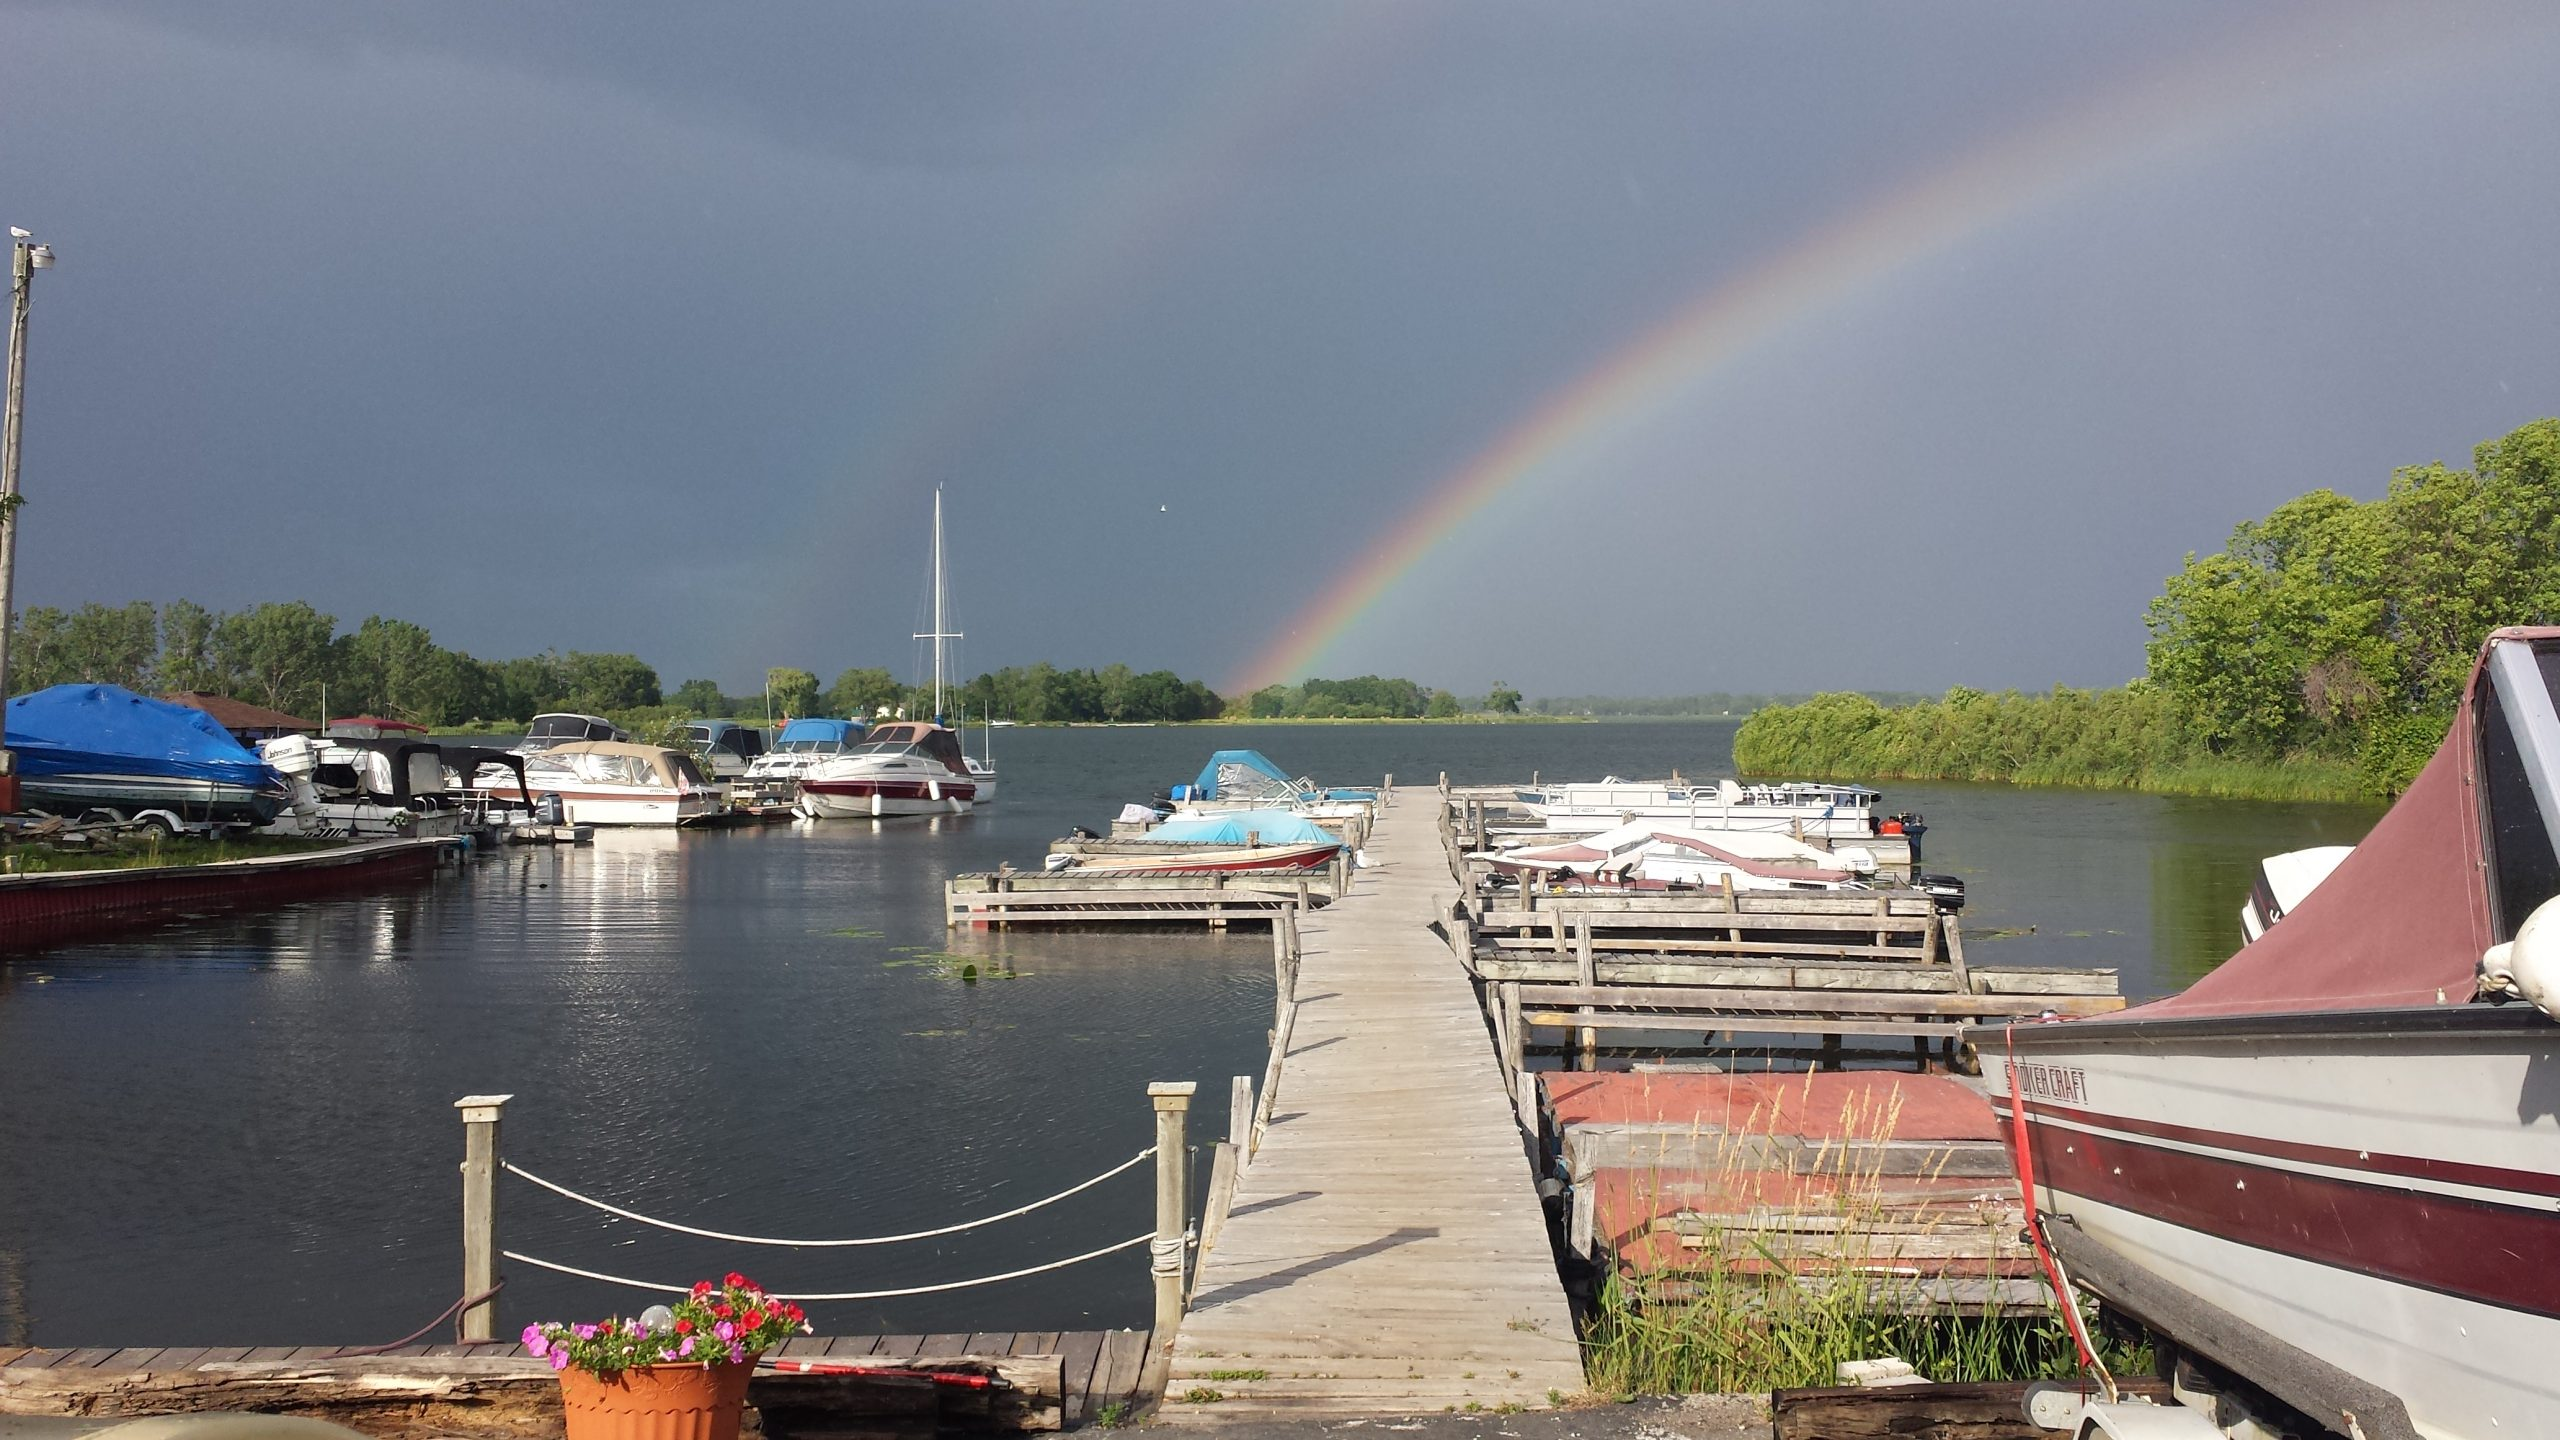 Wellers Bay, rainbow, marina, flowers